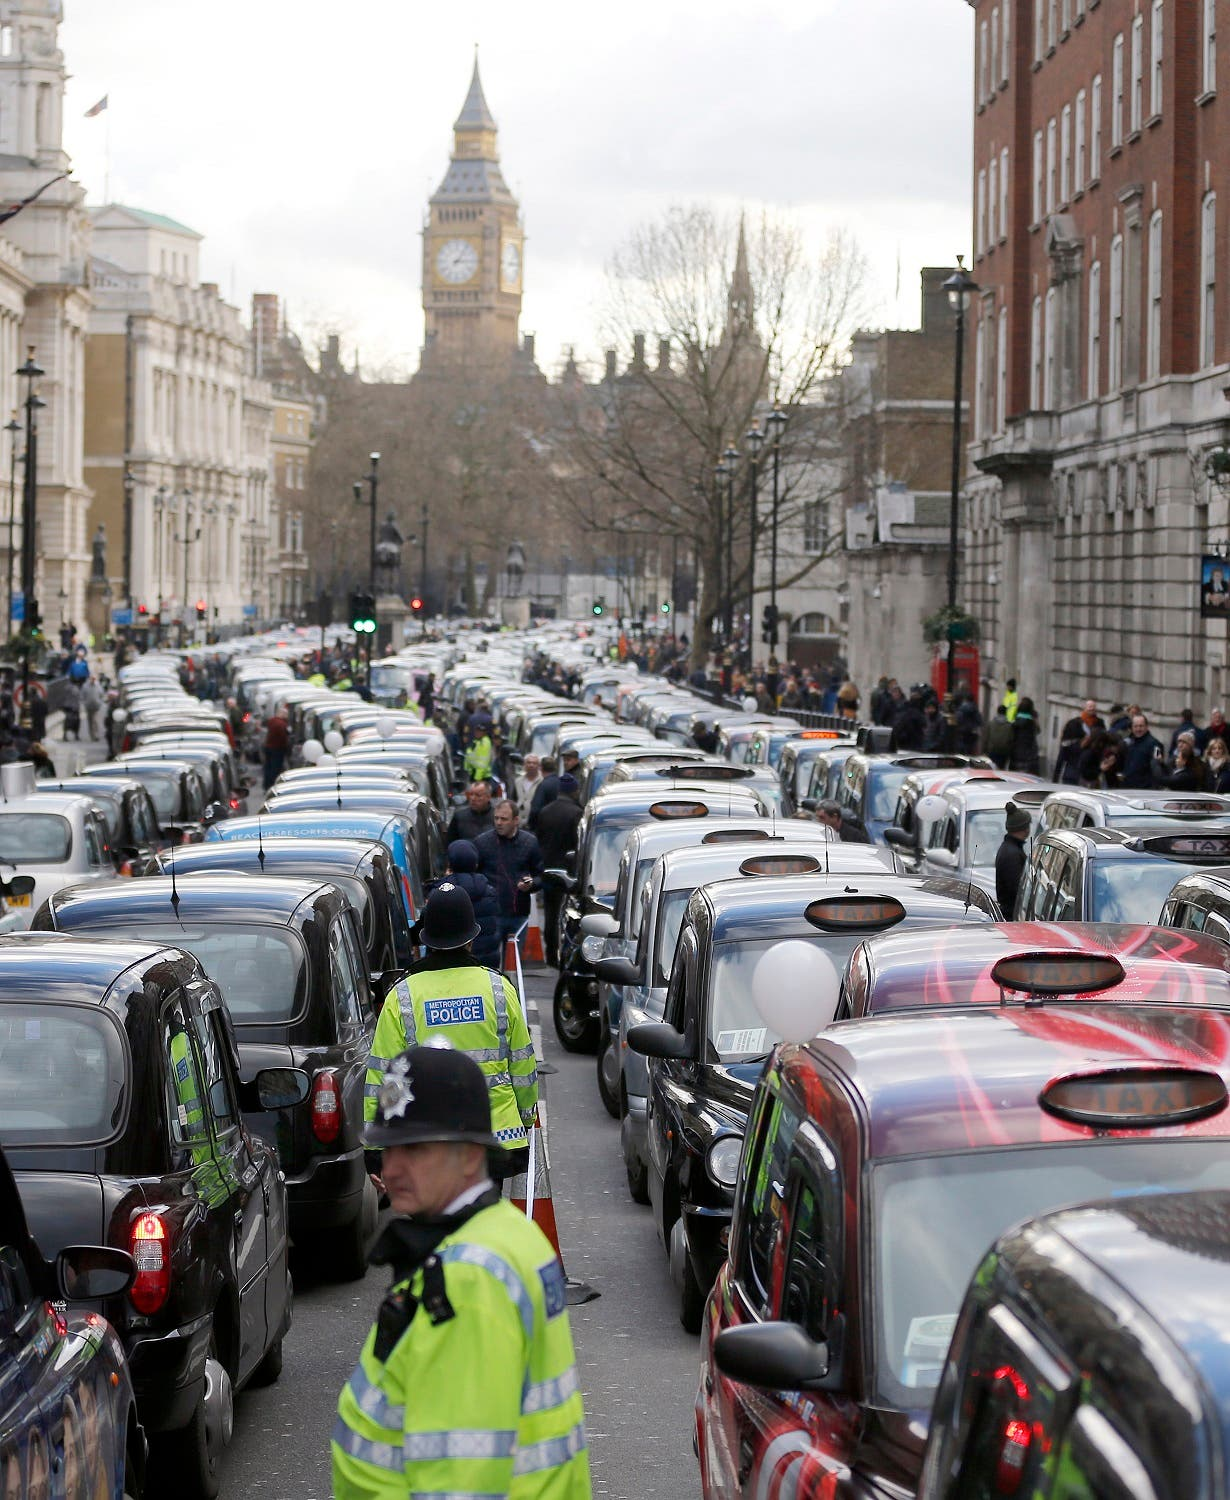 London taxis blocked the roads in central London in February as drivers were concerned with unfair competition from services such as Uber. (File photo: AP)